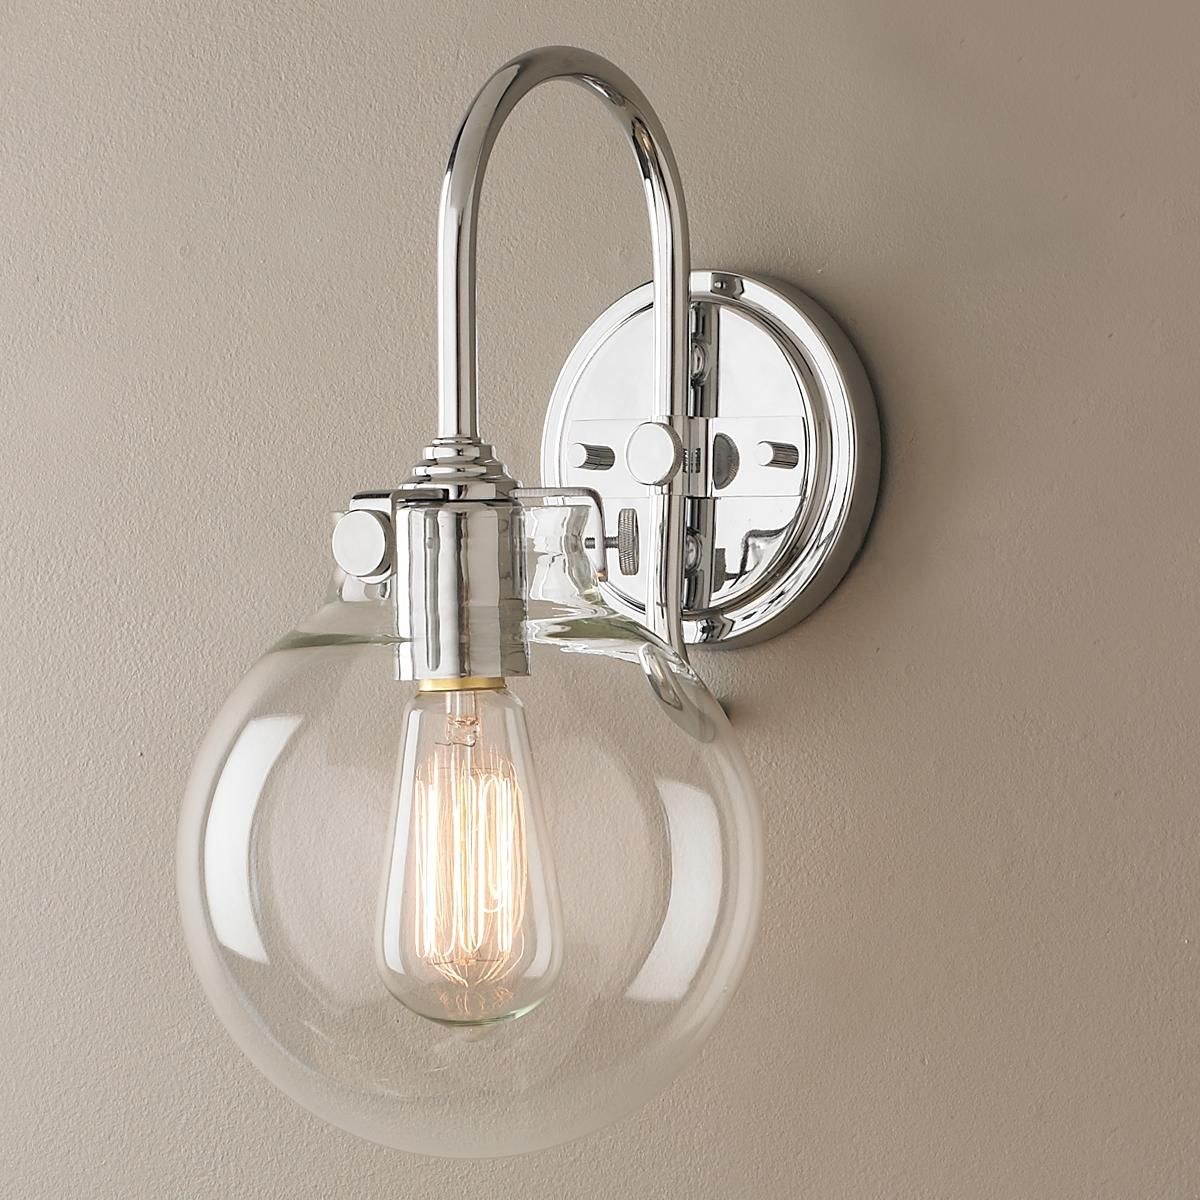 Peachy Retro Glass Globe Wall Sconce Lighting Bathroom Wall Home Interior And Landscaping Fragforummapetitesourisinfo